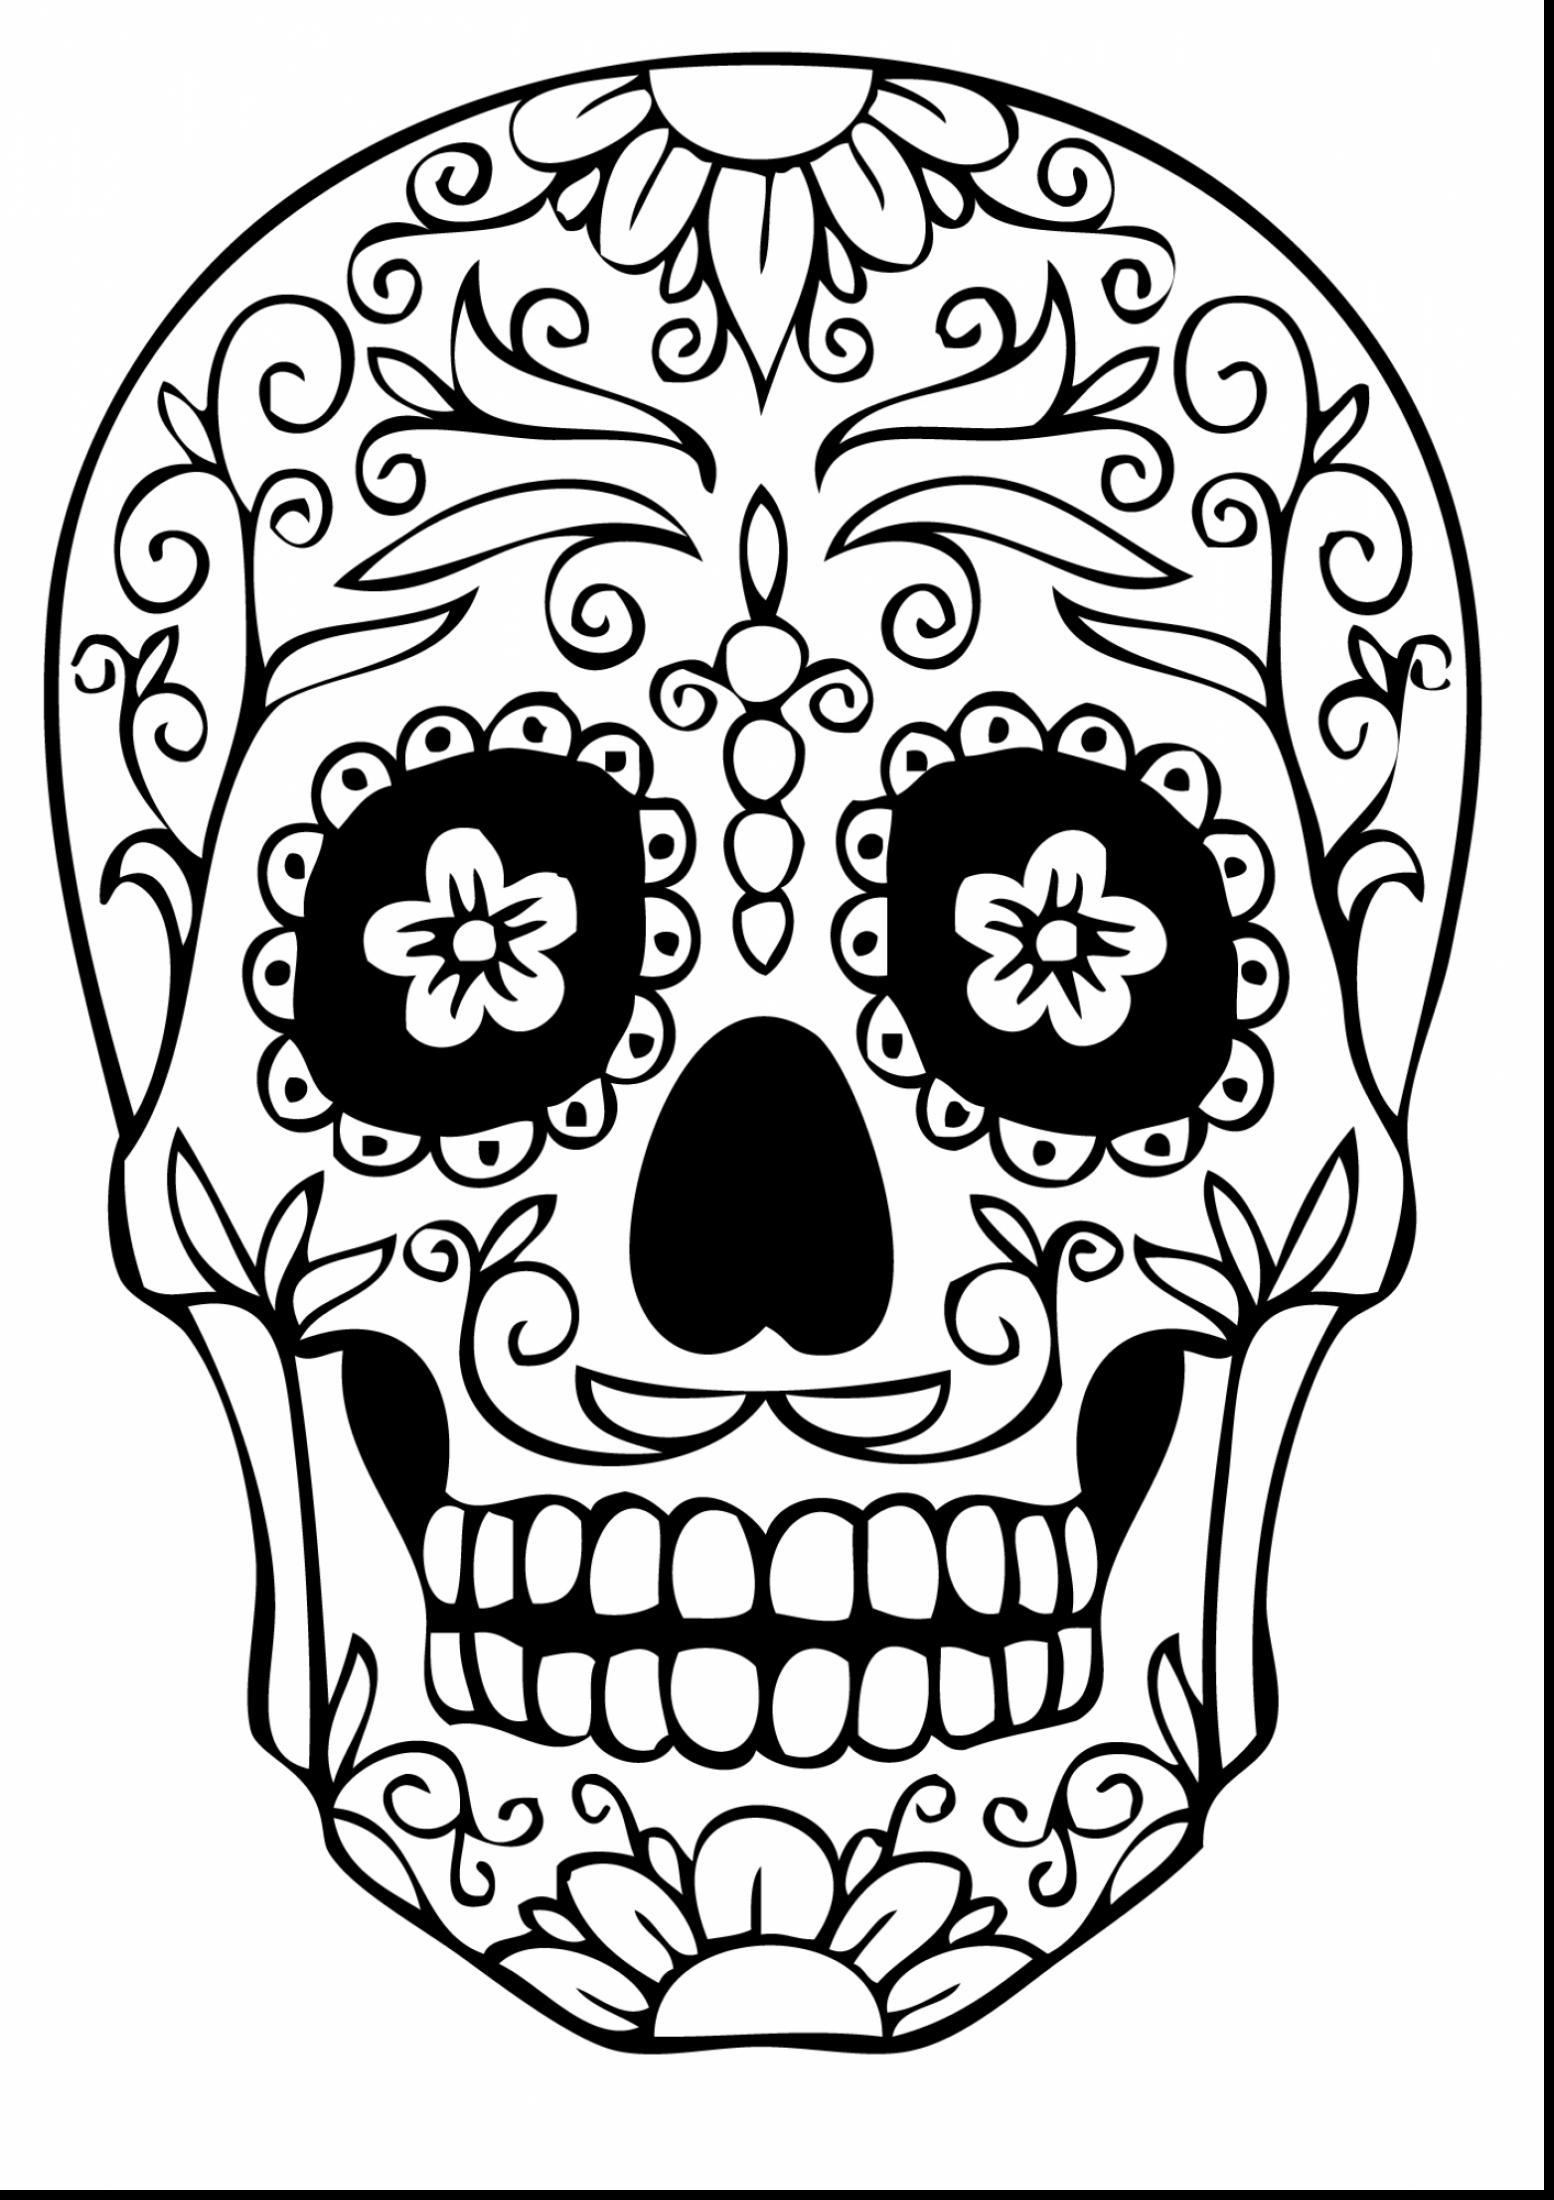 day of the dead coloring pages free dia de los muertos skulls coloring pages at getcolorings free coloring of the day dead pages